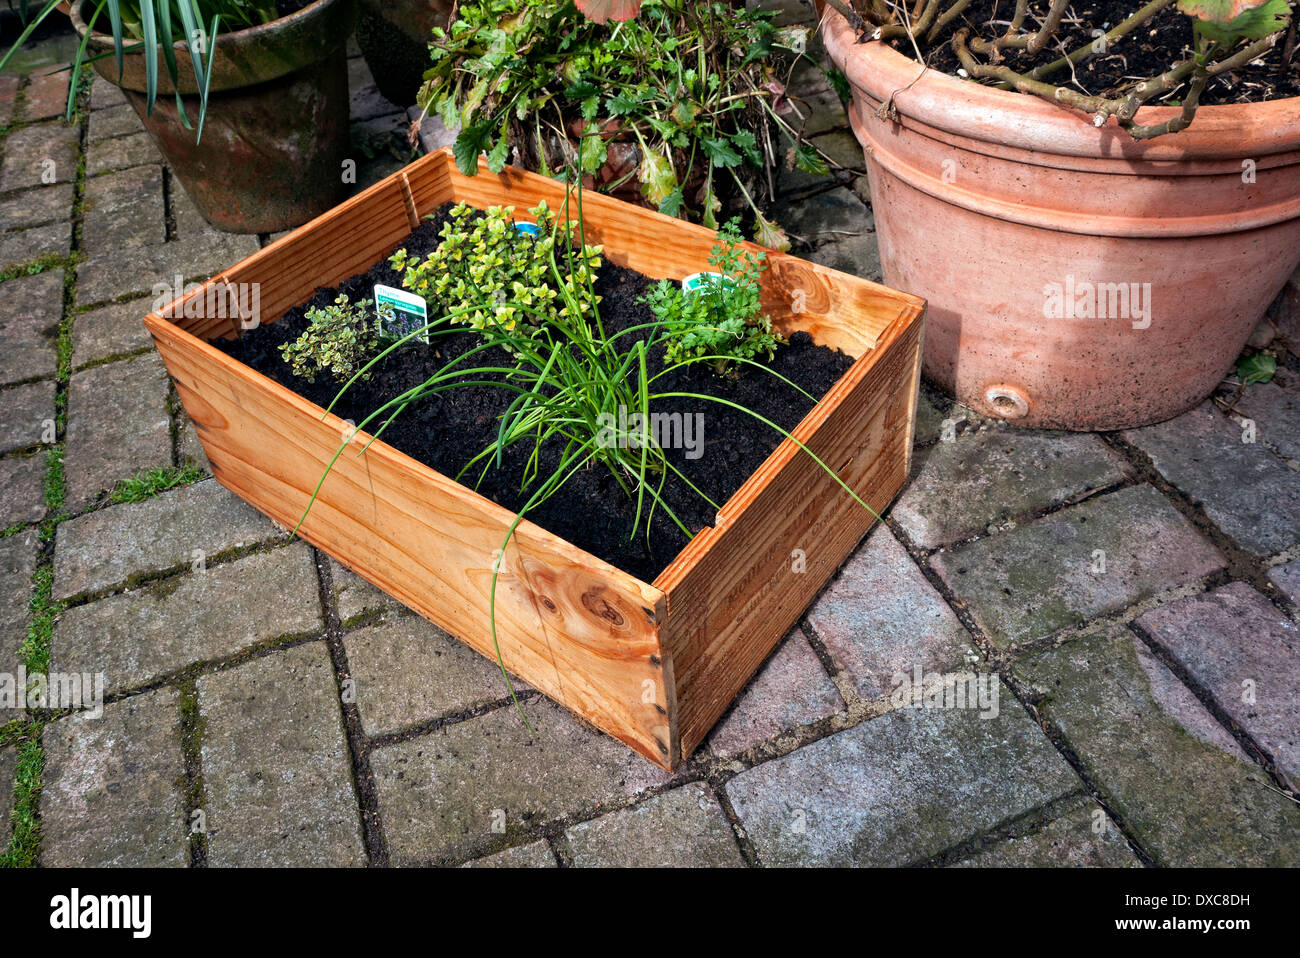 Wine case made into a herb garden. - Stock Image